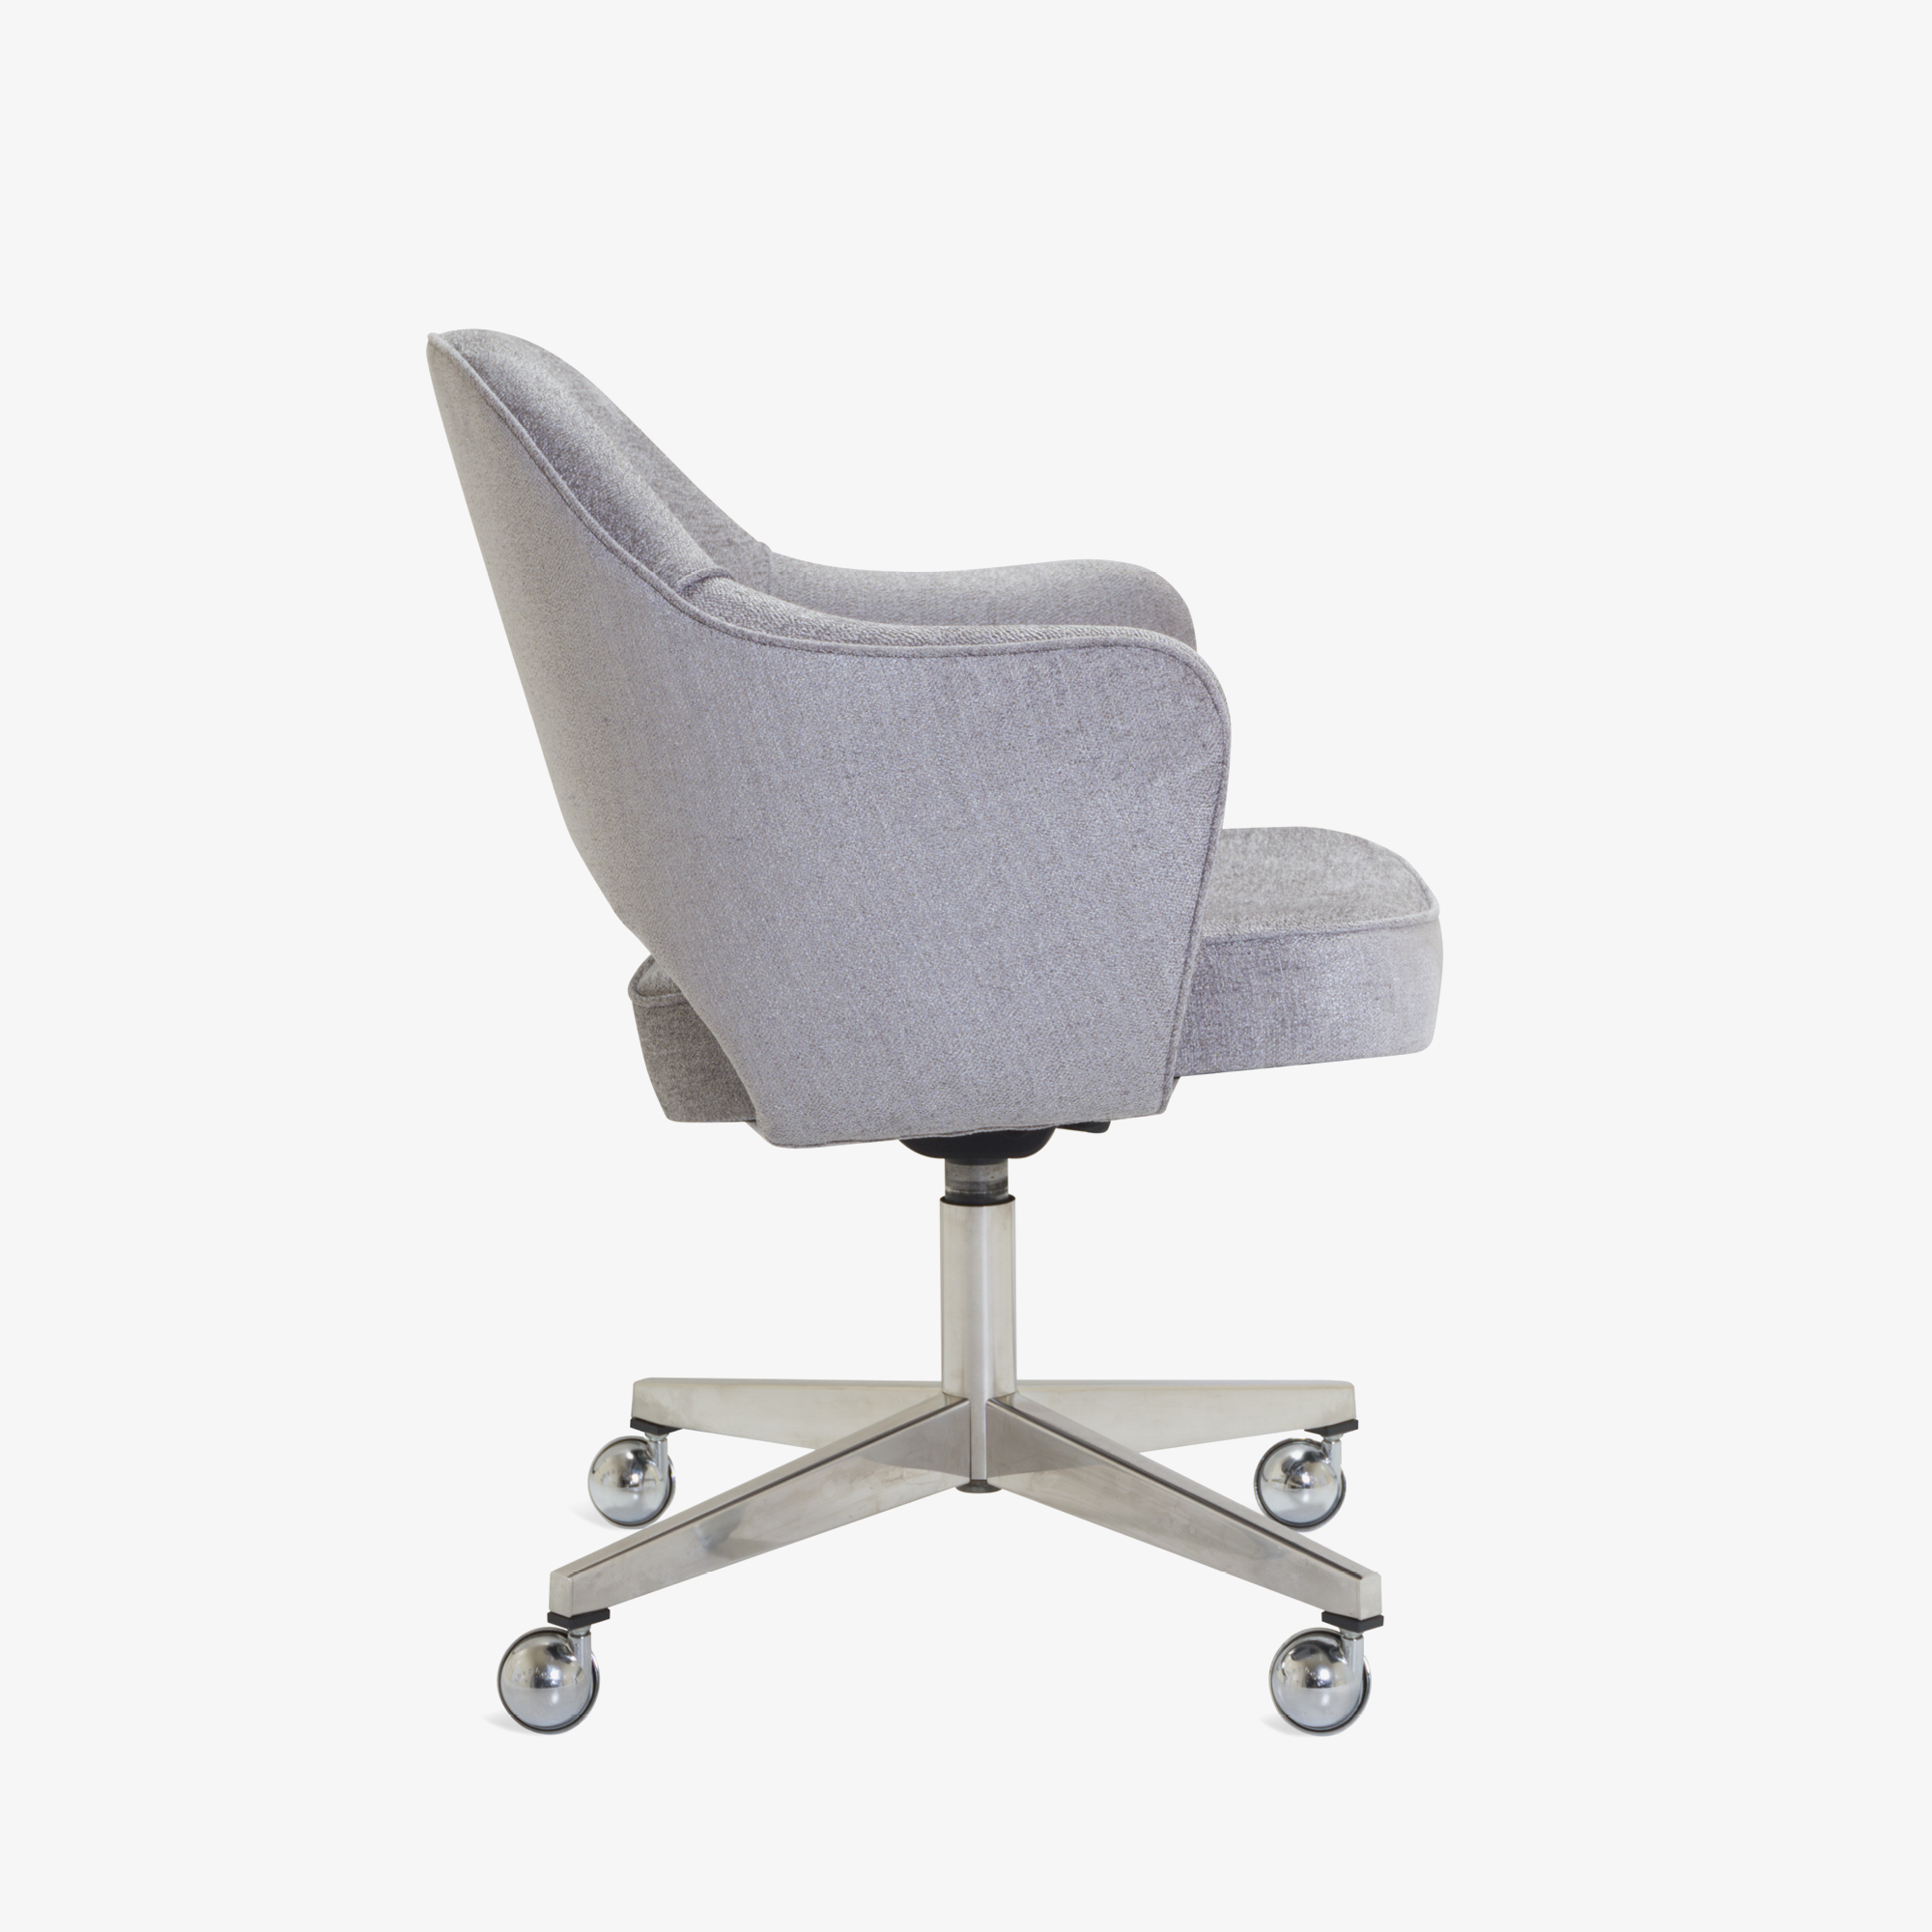 Saarinen Executive Arm Chair in Sterling, Swivel Base3.png